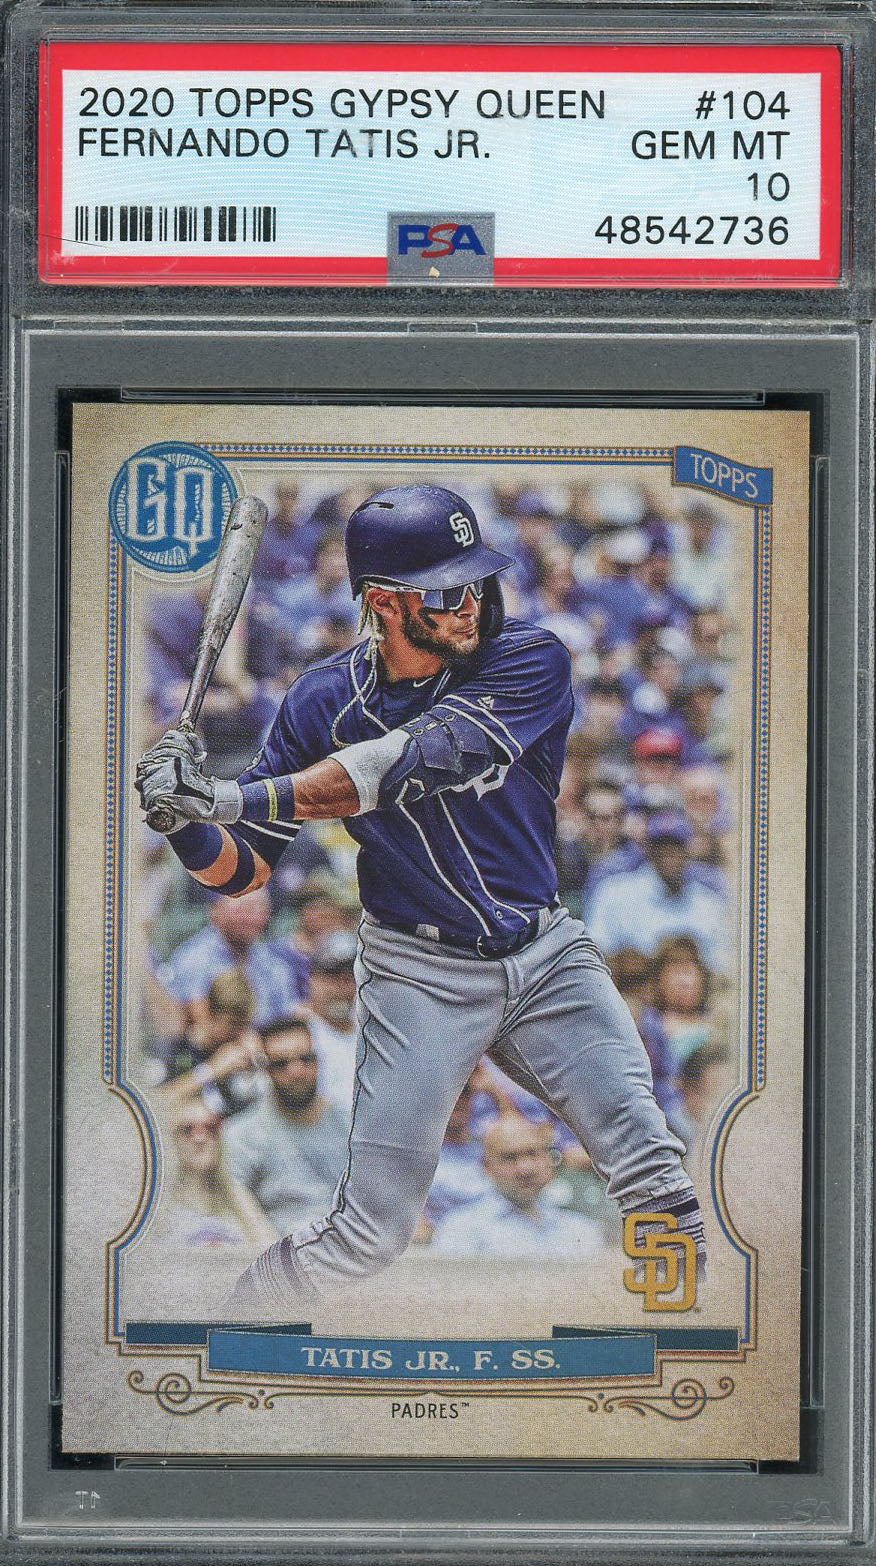 Fernando Tatis Jr San Diego Padres 2020 Topps Gypsy Queen Baseball #104 Graded PSA 10 GEM MINT-Powers Sports Memorabilia